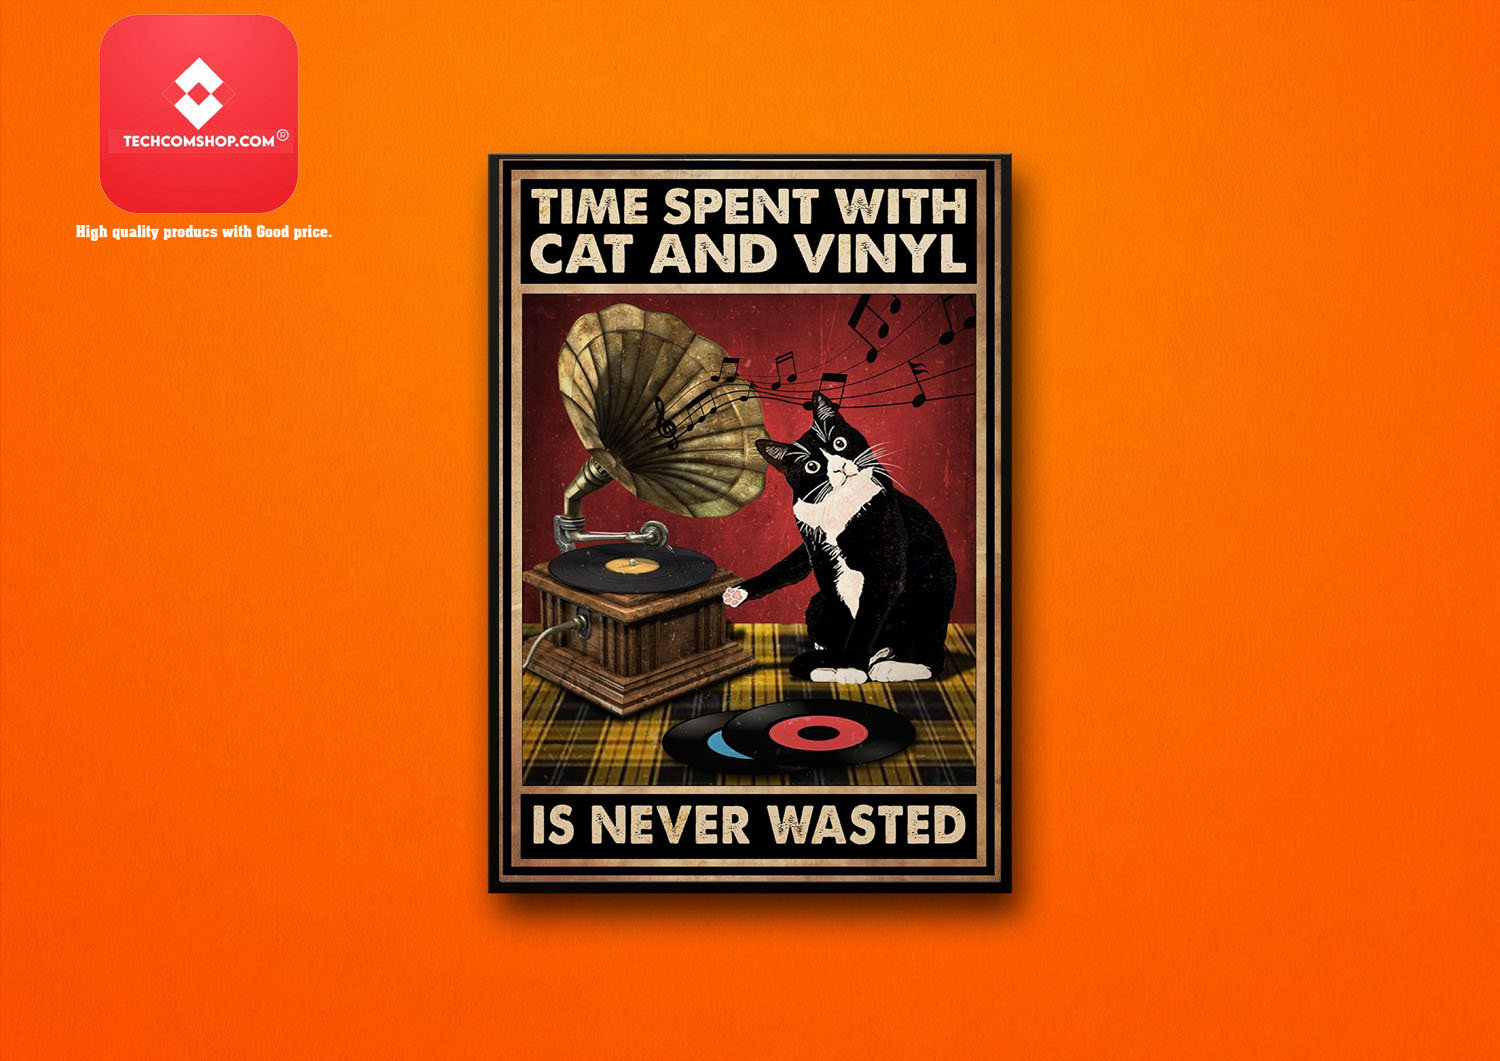 Time spent with cat and vinyl is never wasted poster10